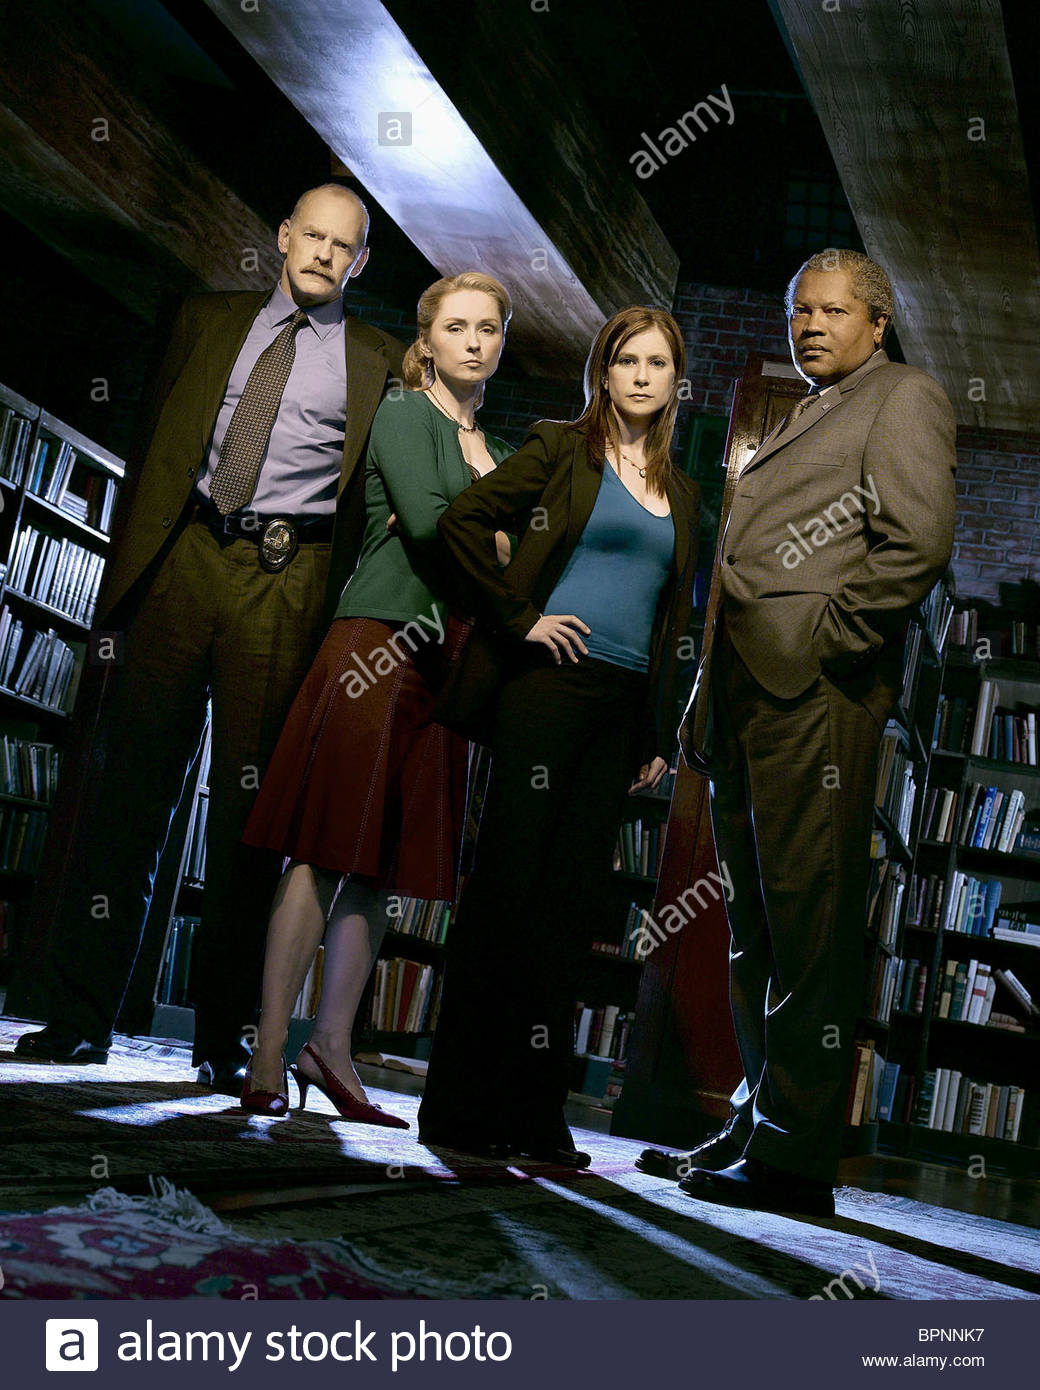 CASEY SANDER NINA SIEMASZKO KELLIE MARTIN & CLARENCE WILLIAMS III MYSTERY WOMAN: SING ME A MURDER (2005) - Stock Image